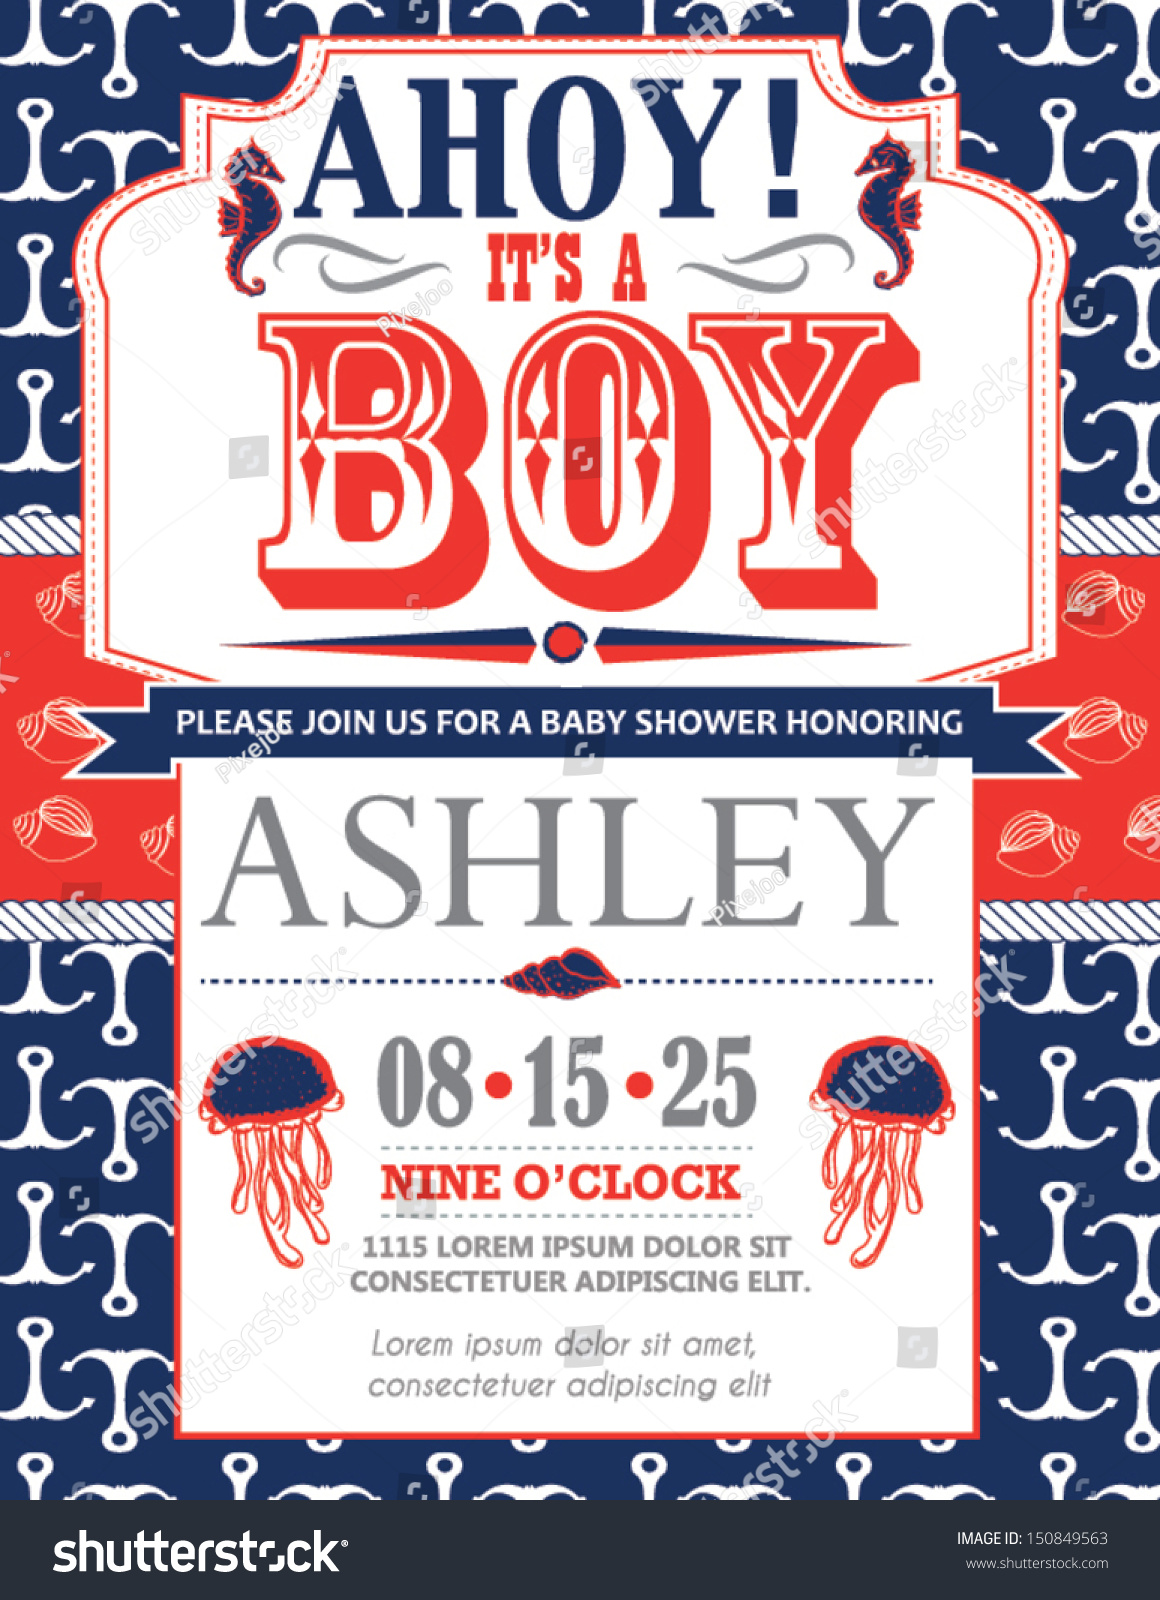 Nautical Baby Shower Invitations – gangcraft.net